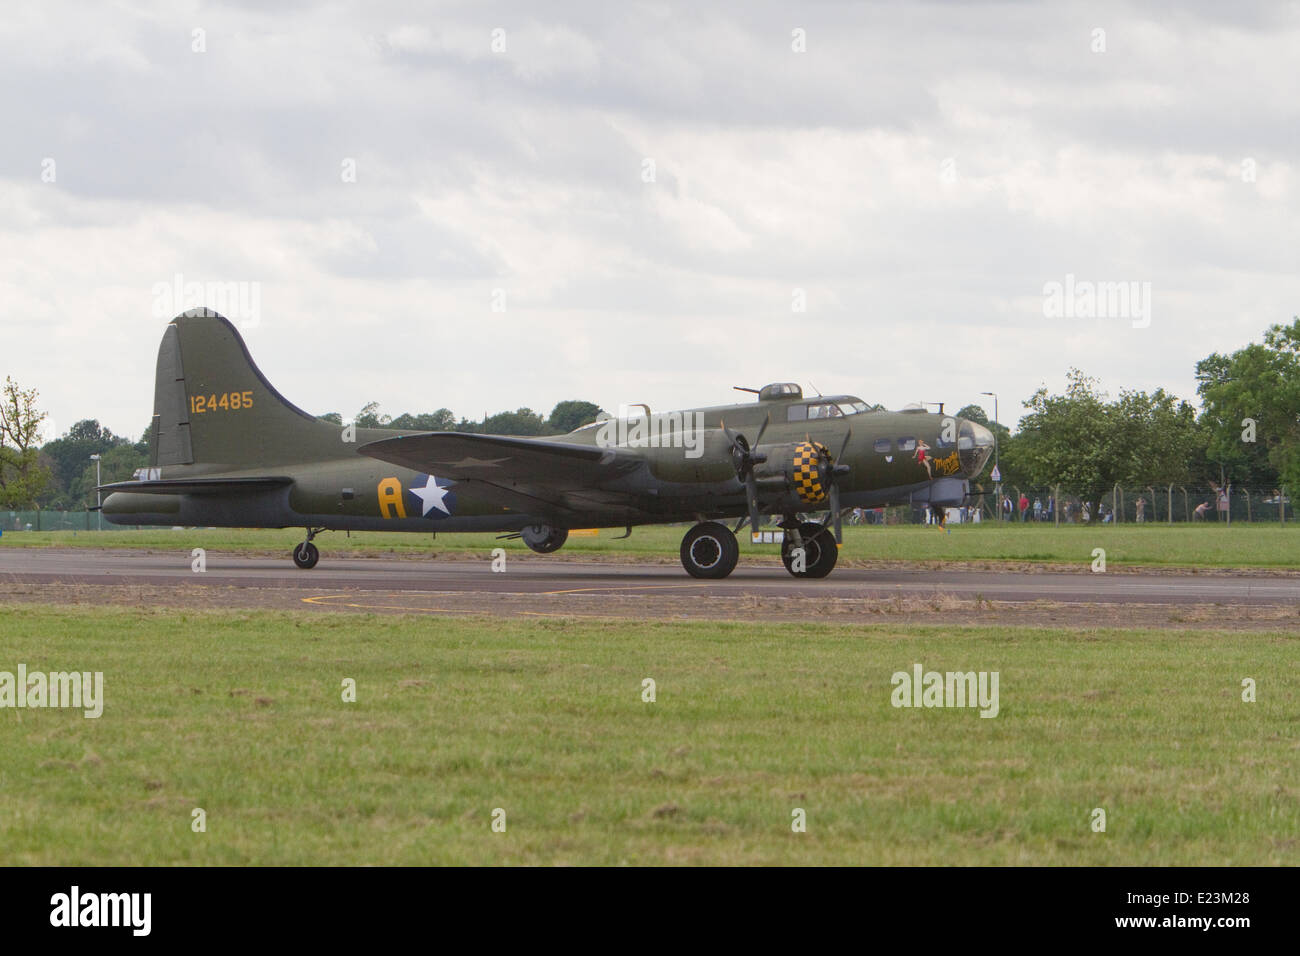 Biggin Hill, UK.14th June, 2014. B-17 Flying Fortress G-BEDF Sally B at the Festival of Flight in Biggin Hill Credit: Stock Photo